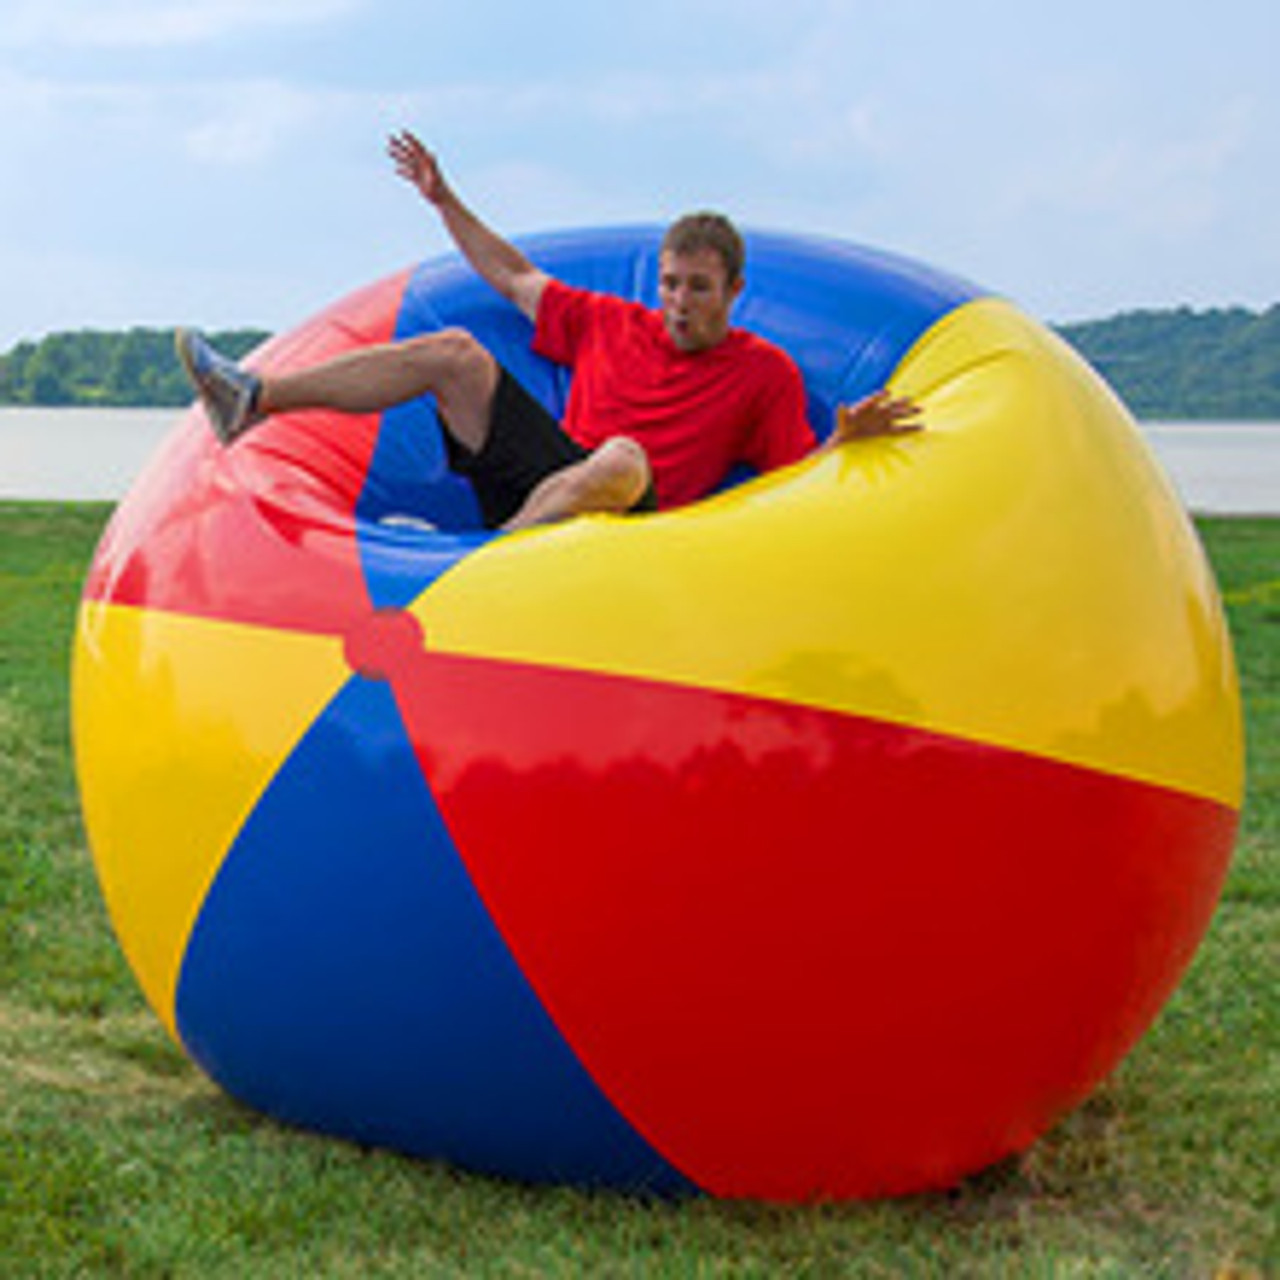 10-foot-giant-jumbo-big-ass-beach-ball-promotions-beach-party-summer-pool-inflatable-float-nightclubshop-supplies-xxl-6